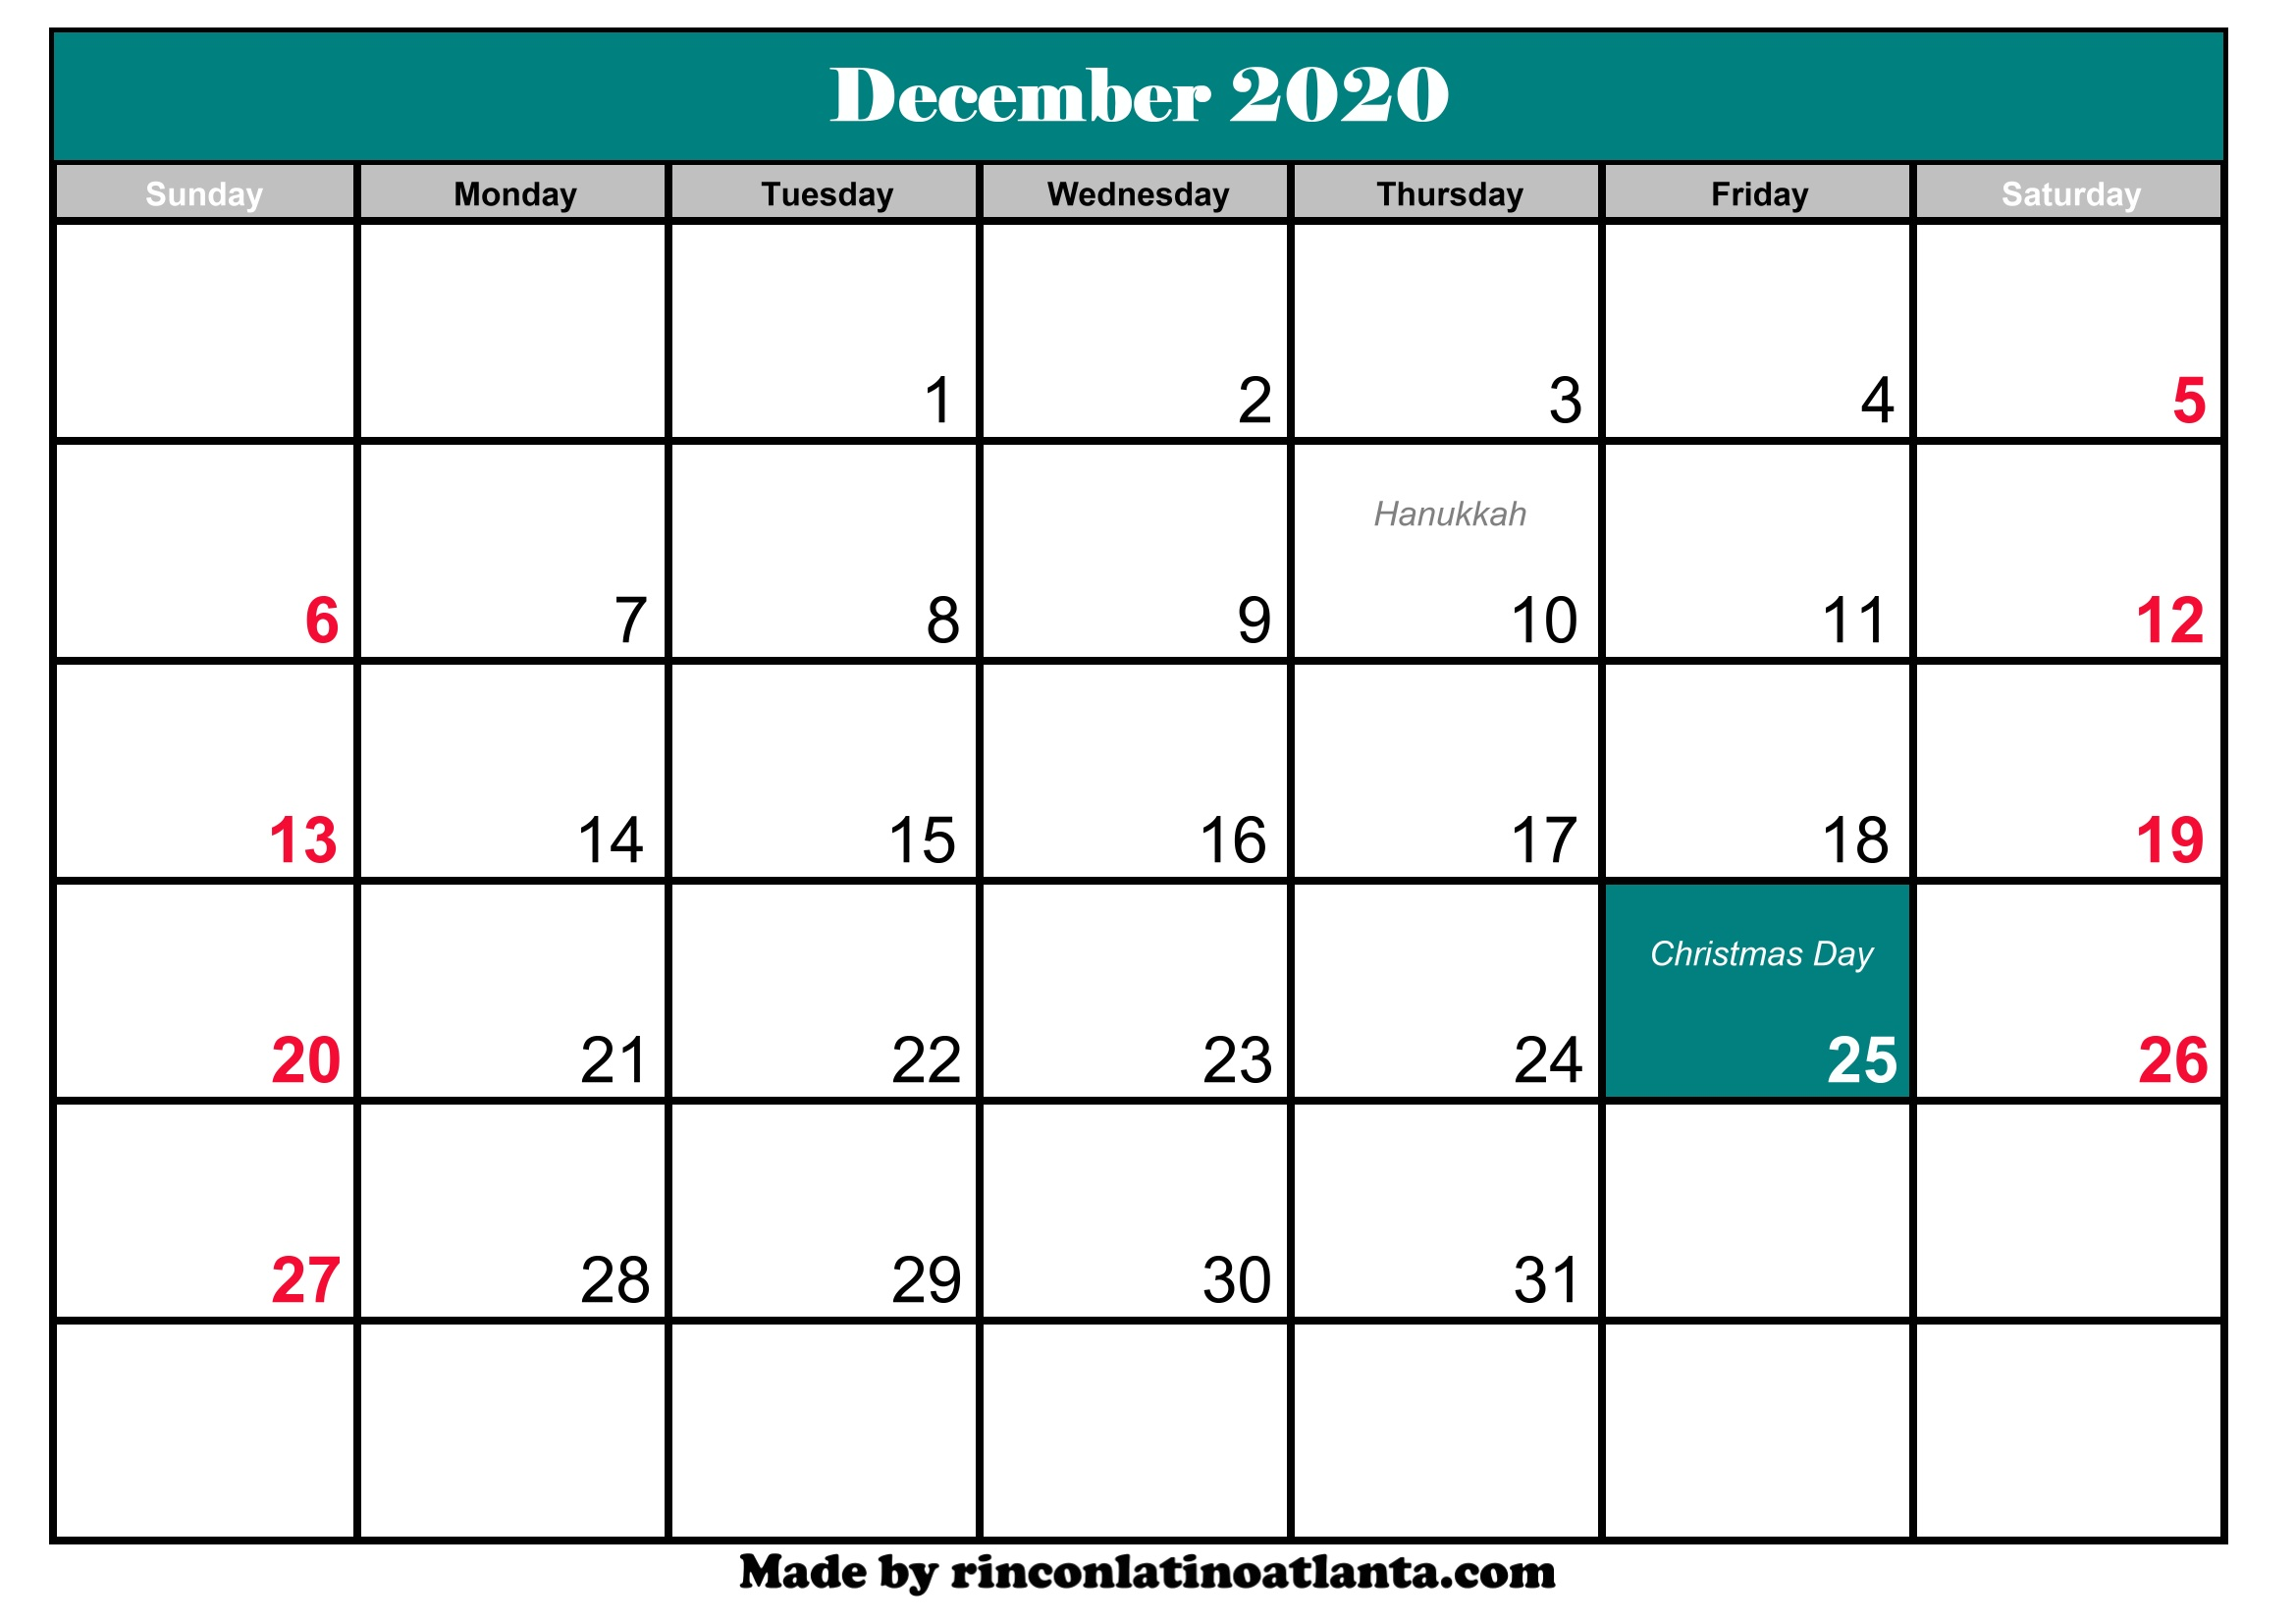 Calendar December 2020.December 2020 Calendar With Holidays Calendar Template Printable